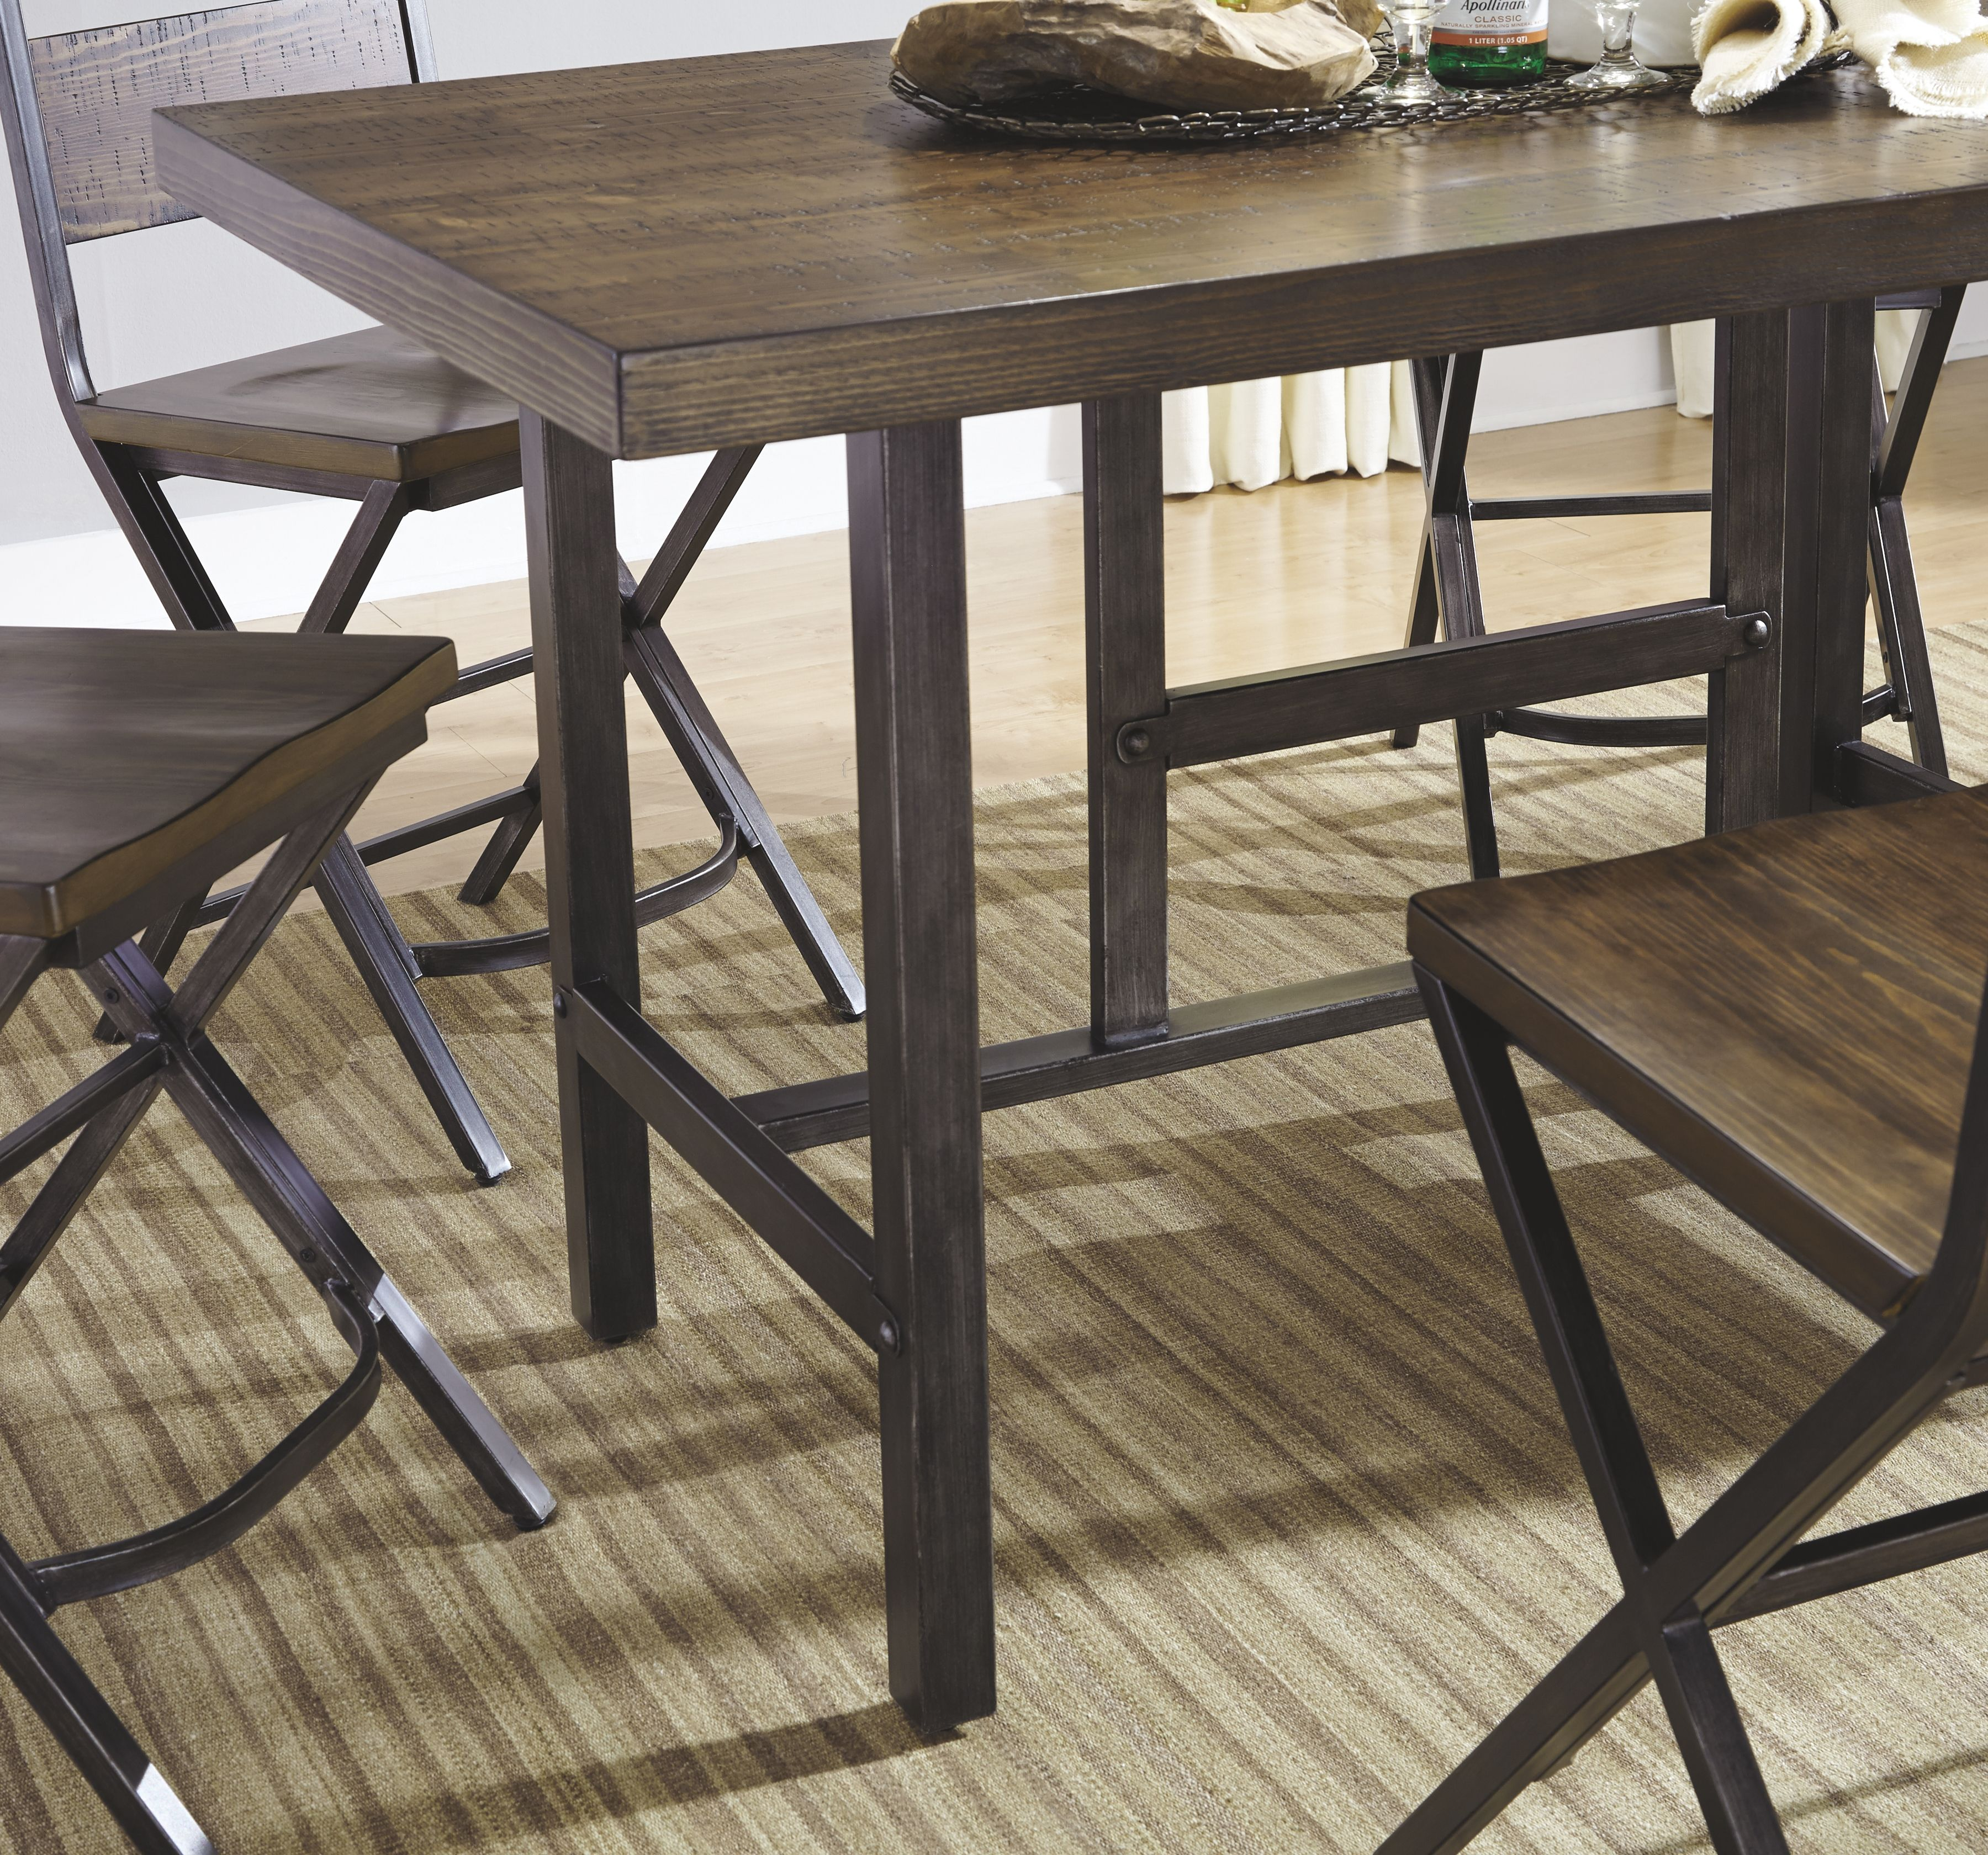 29+ Ashley kavara counter height dining table in medium brown Best